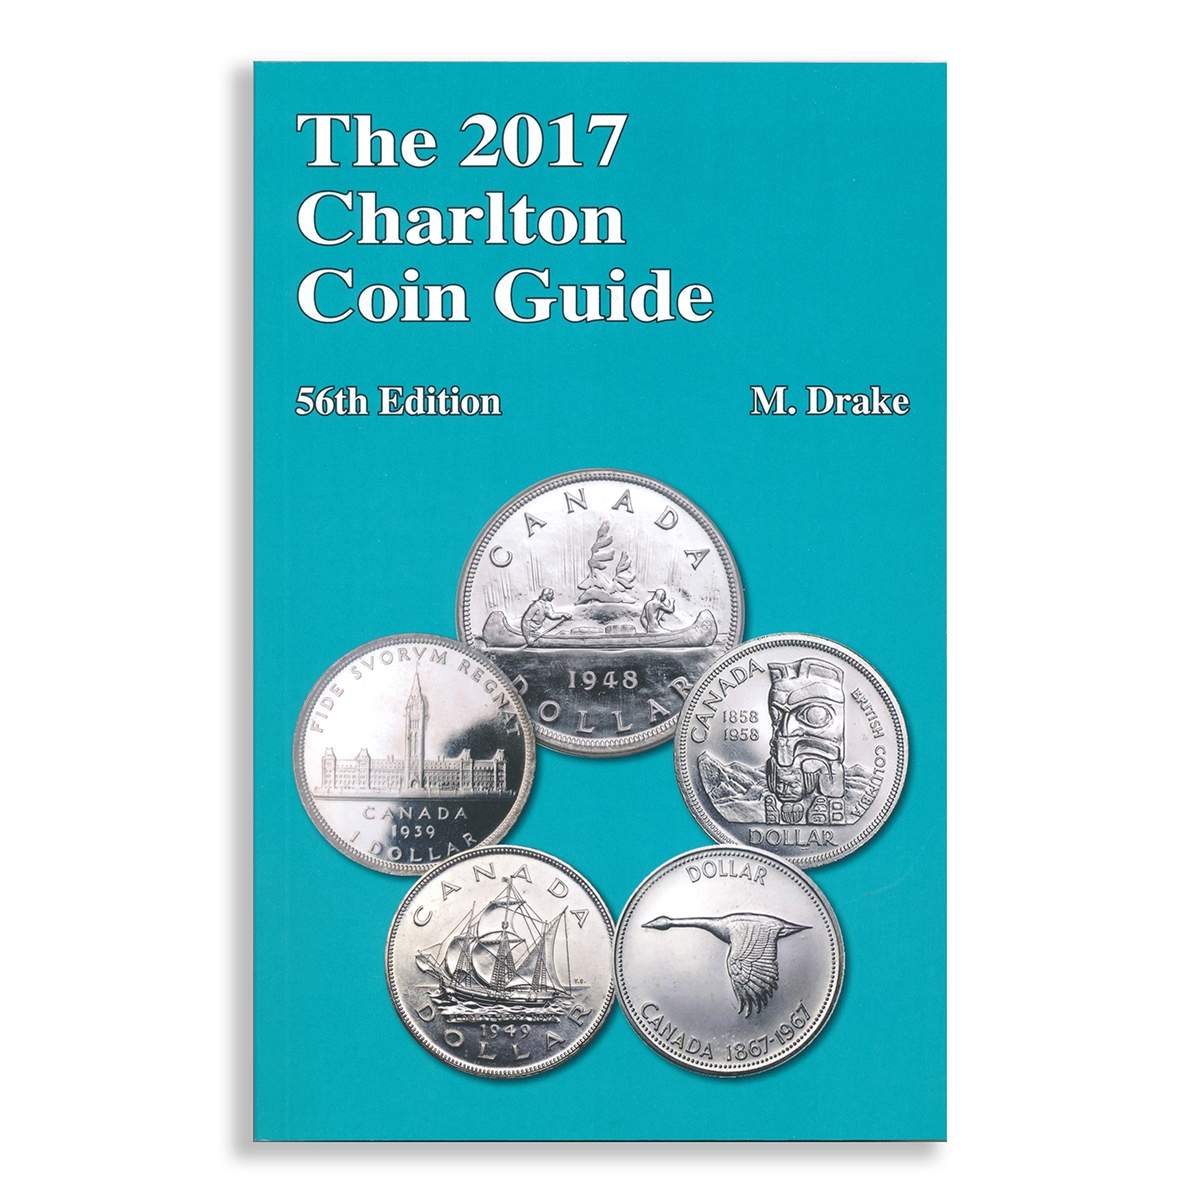 The 2017 Charlton Coin Guide, 56th Edition